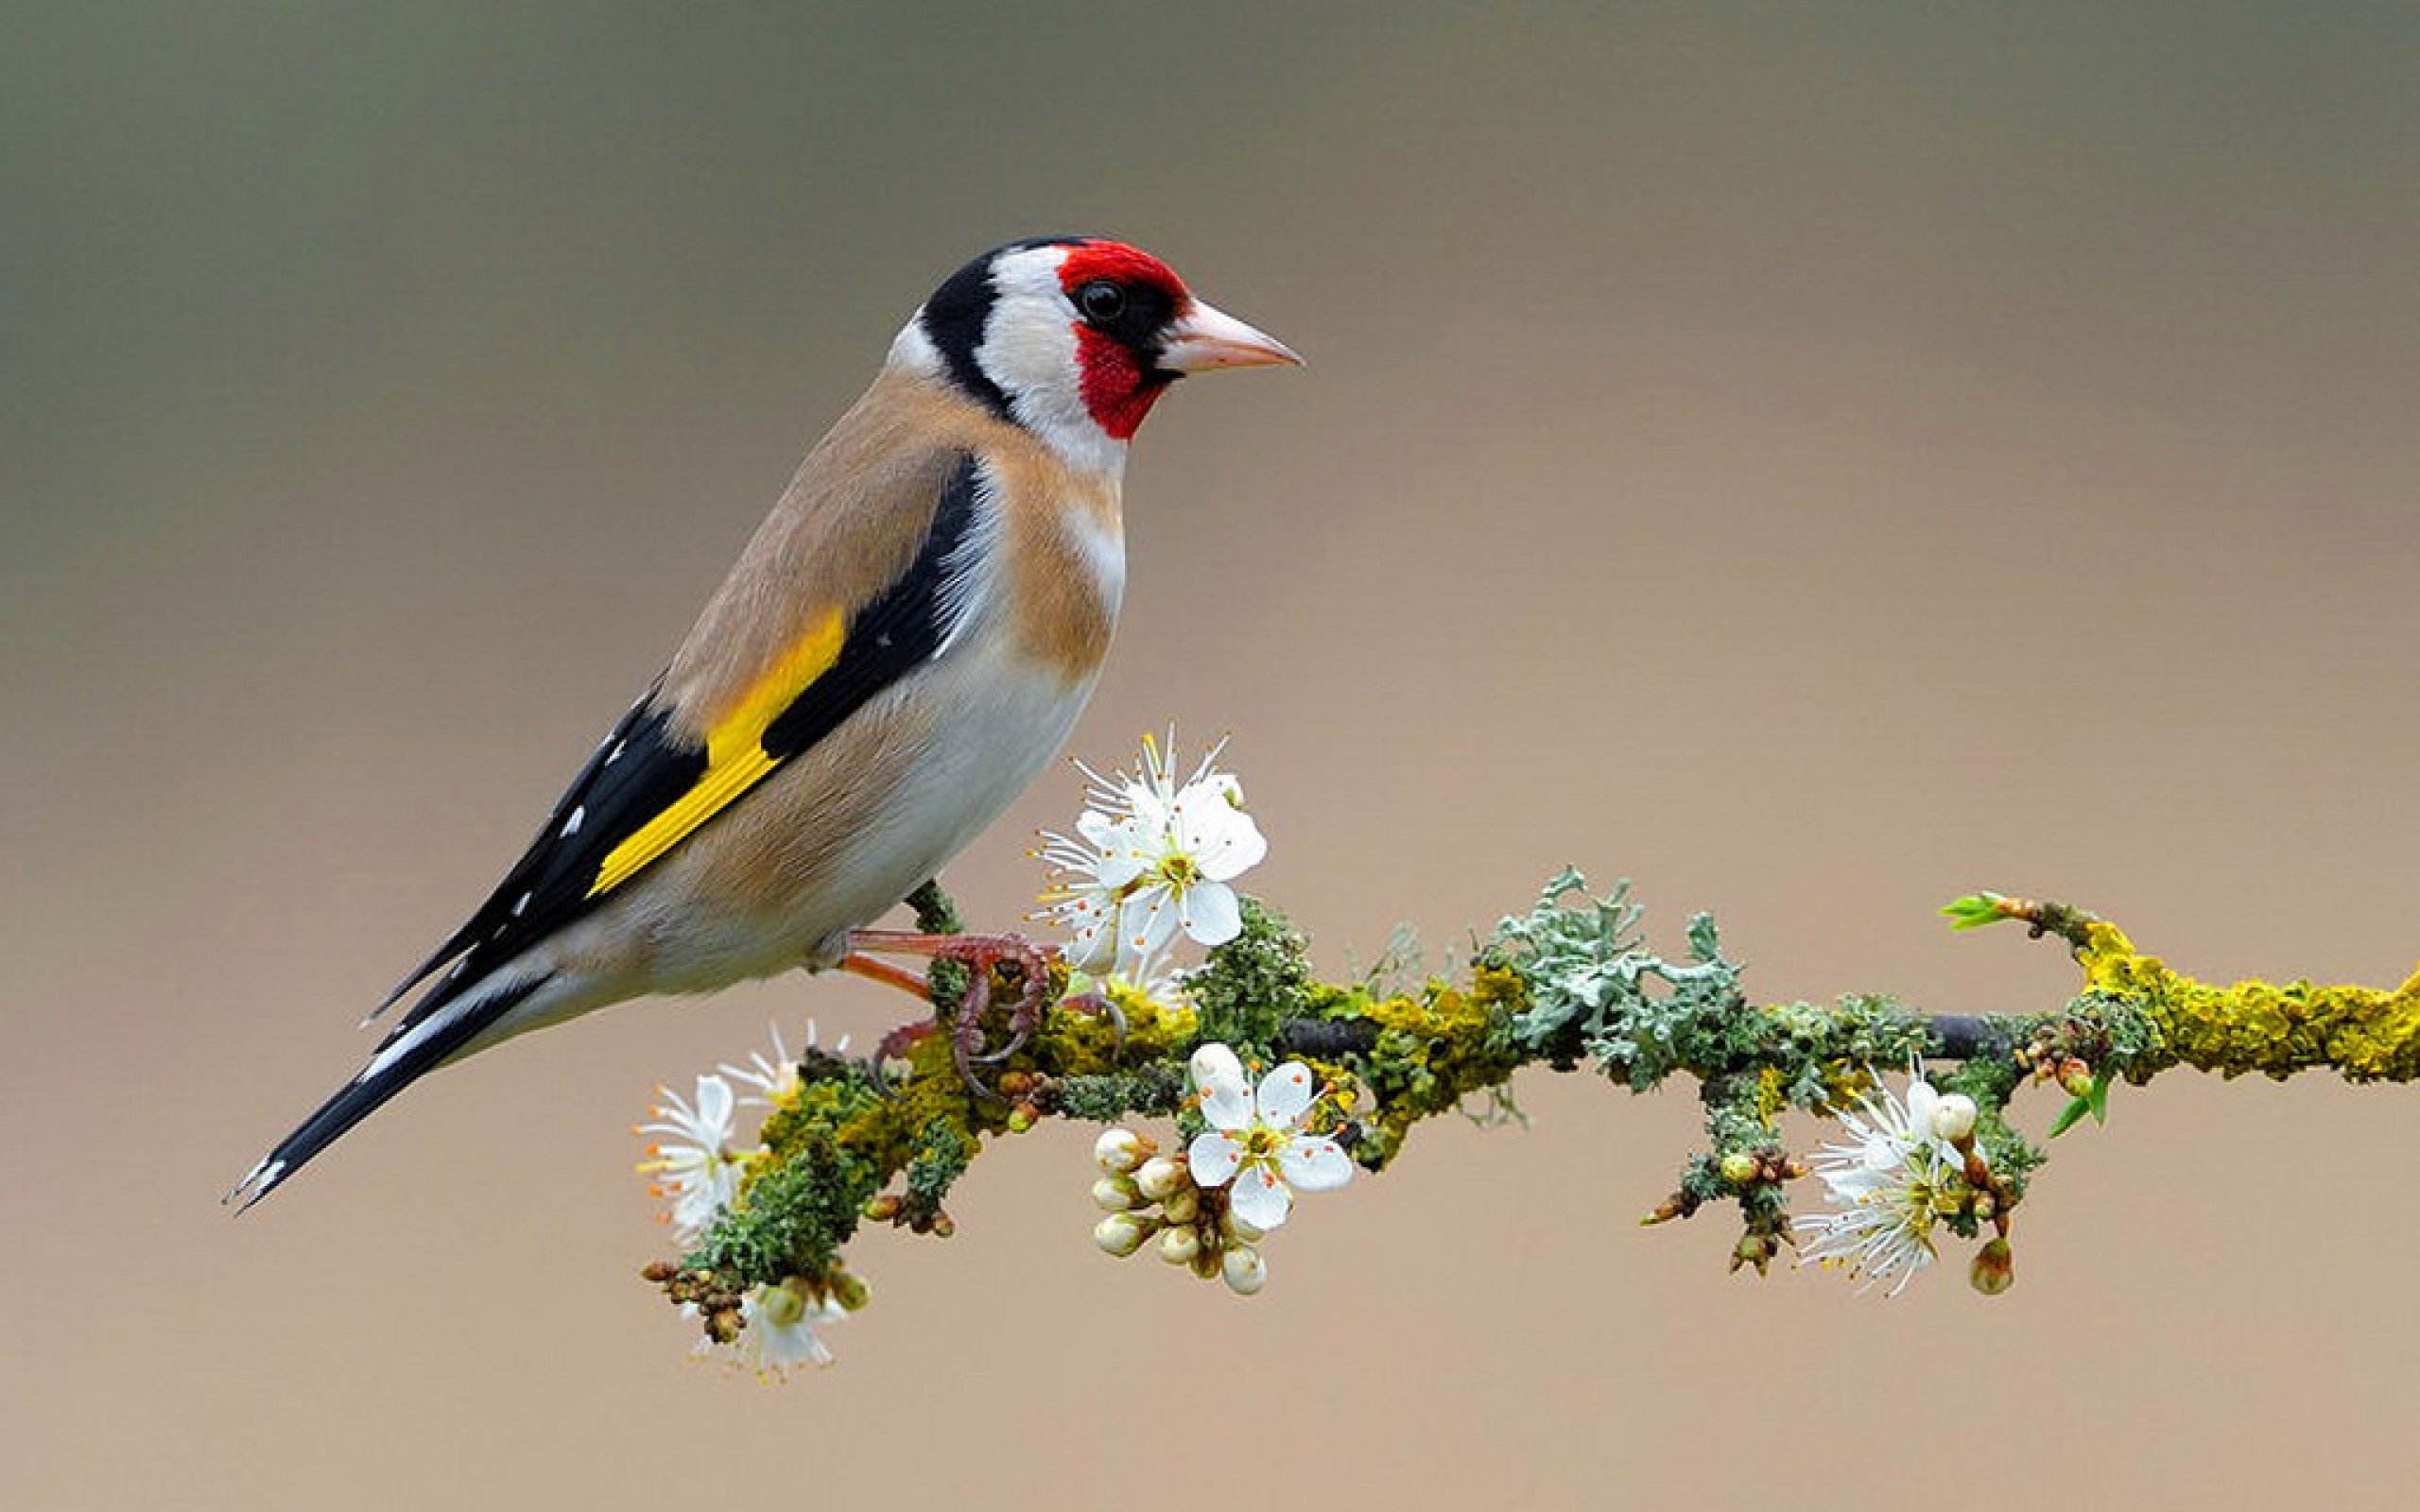 Bird On Flower Branch 2560x1600 6606 HD Wallpaper Res 2560x1600 2560x1600